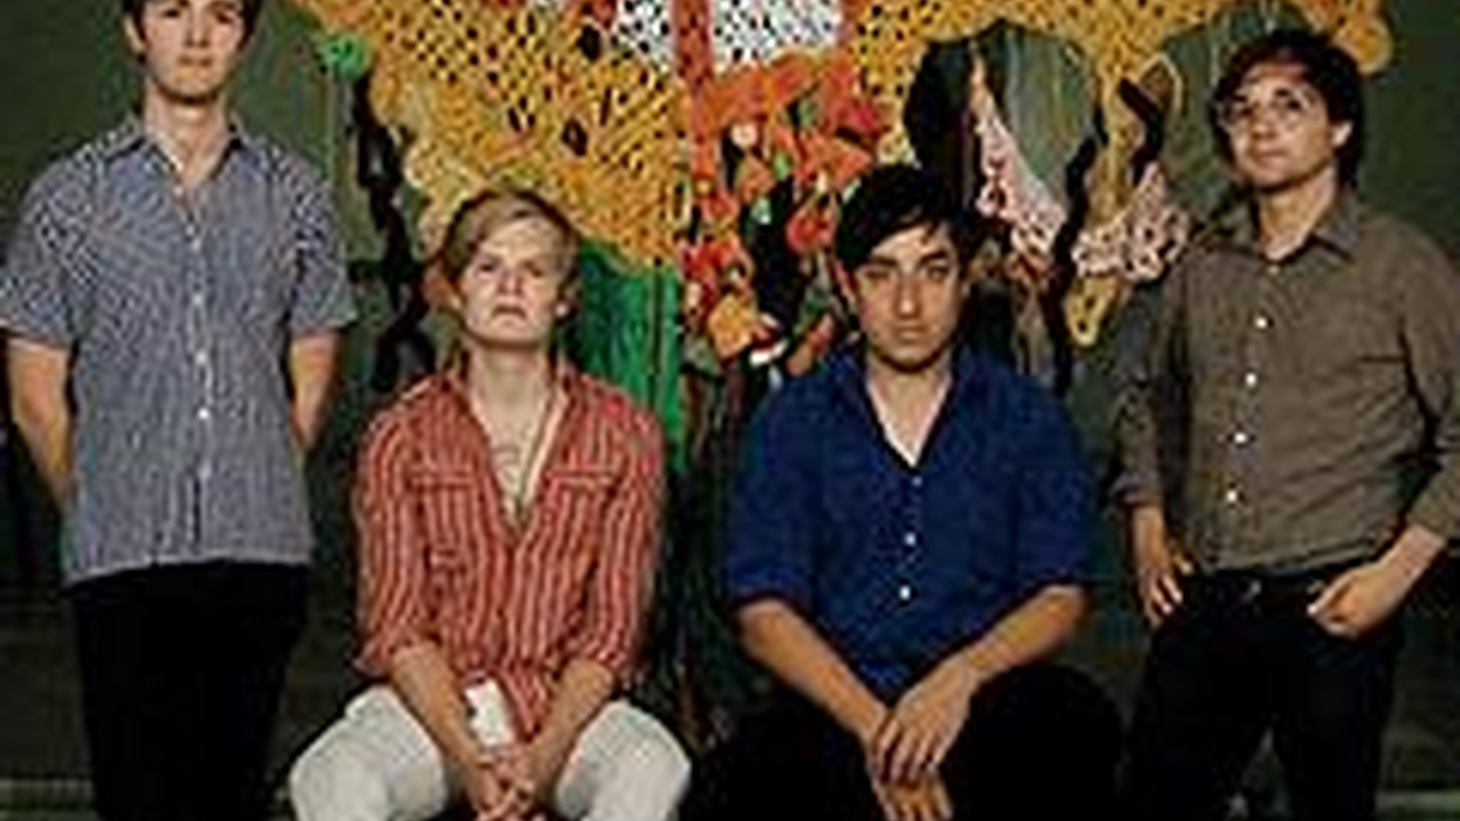 Grizzly Bear host a session of homespun and textured music for Morning Becomes Eclectic listeners at 11:15am.